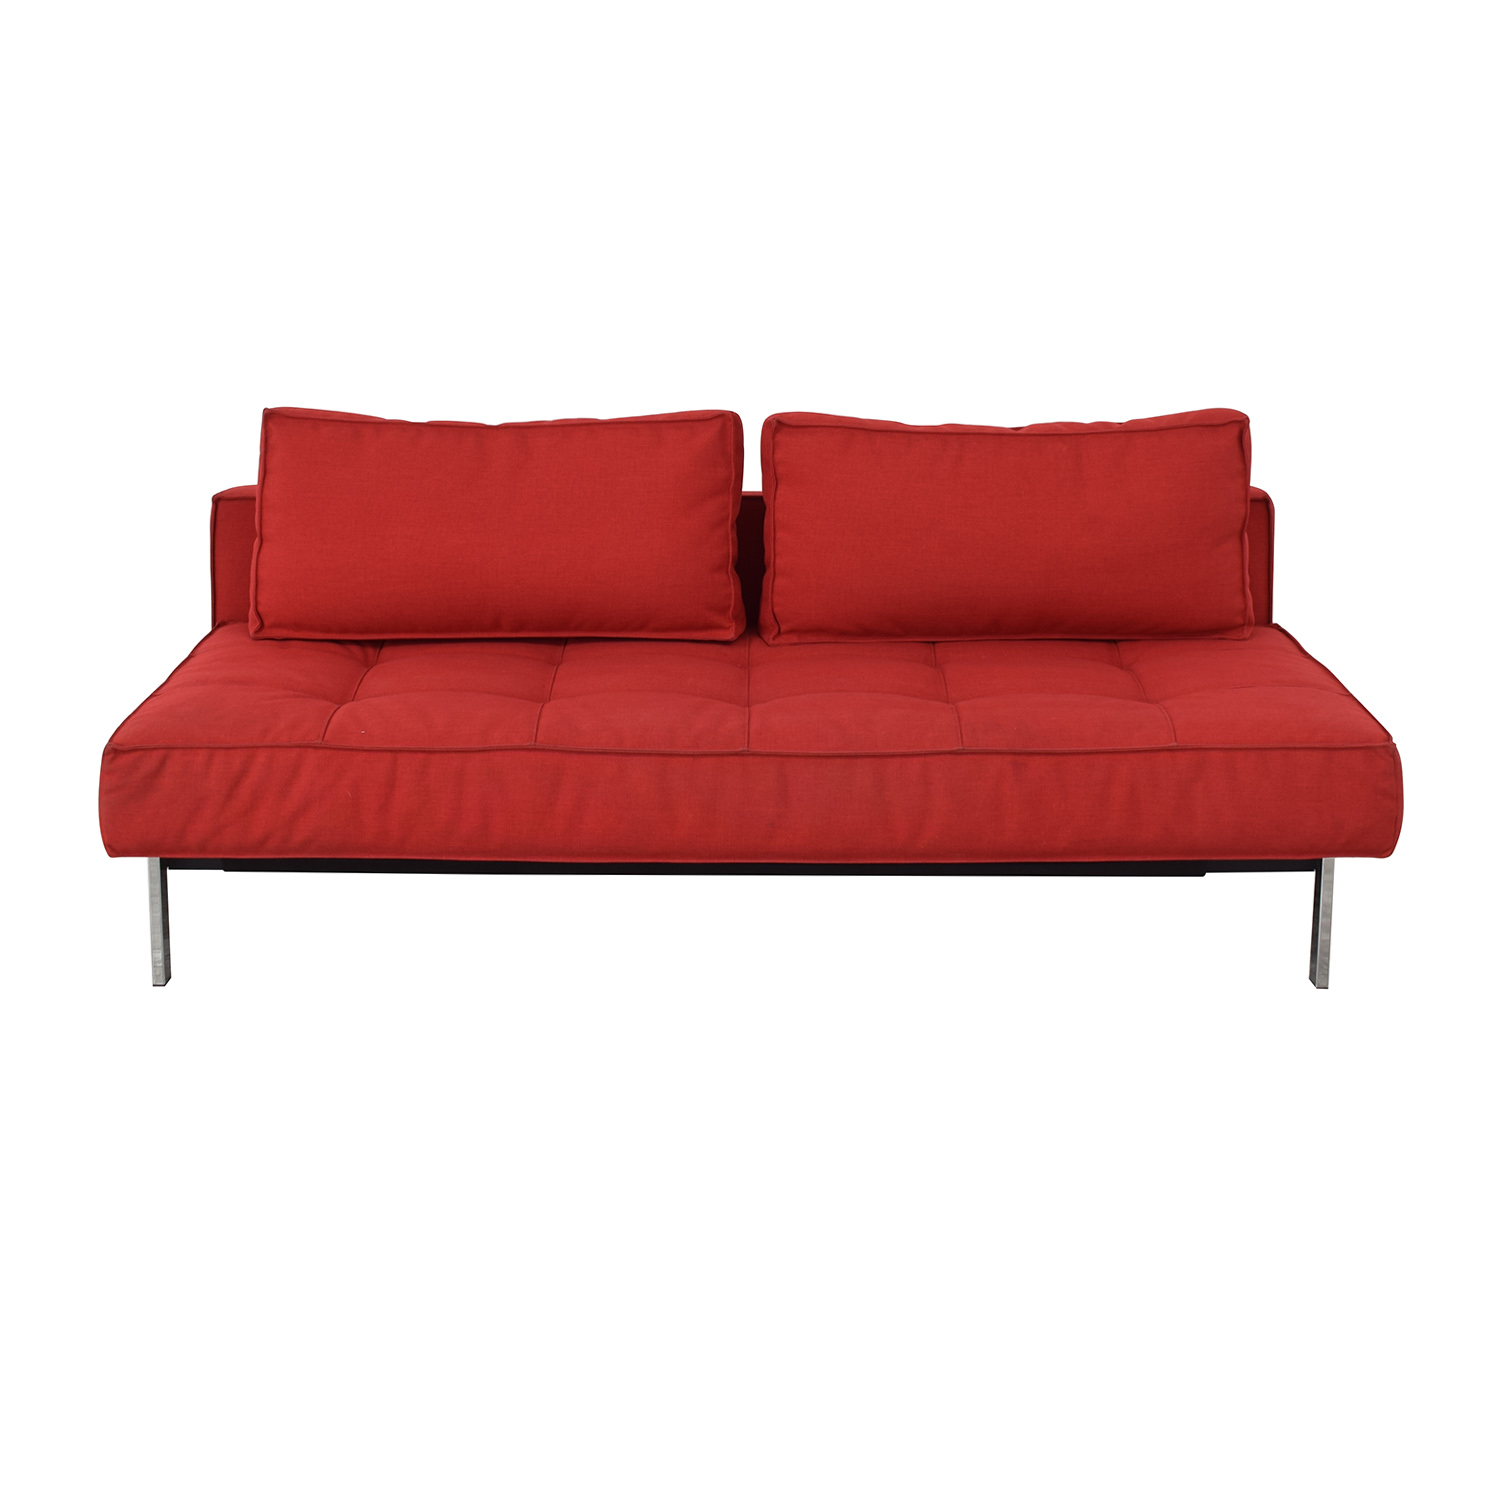 Innovation Living Innovation Living Red Tufted Twin Sleeper Sofa nj